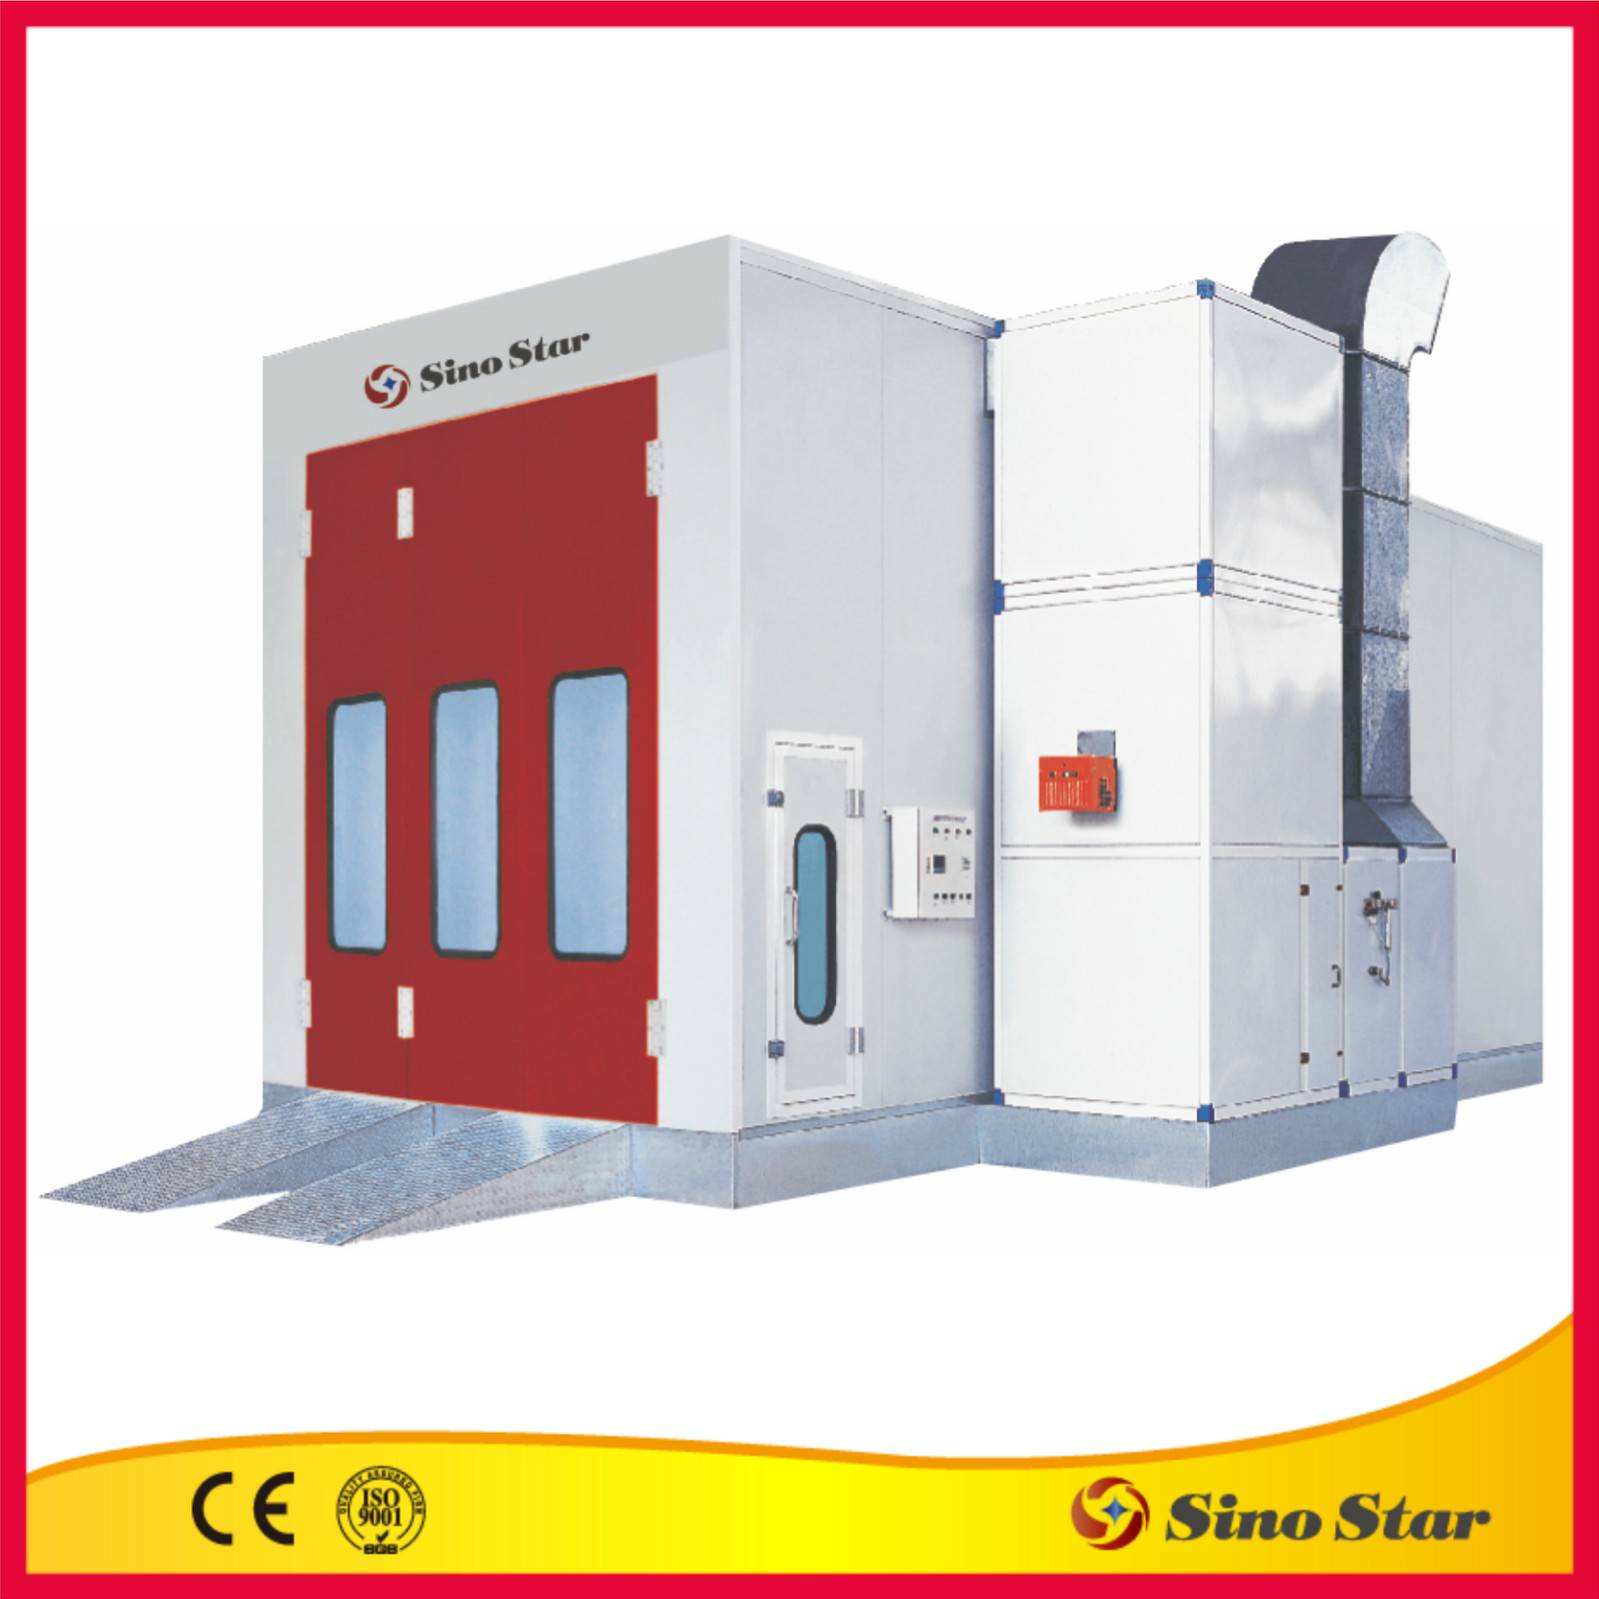 painting spray booth equipment(SS-7202-CE)